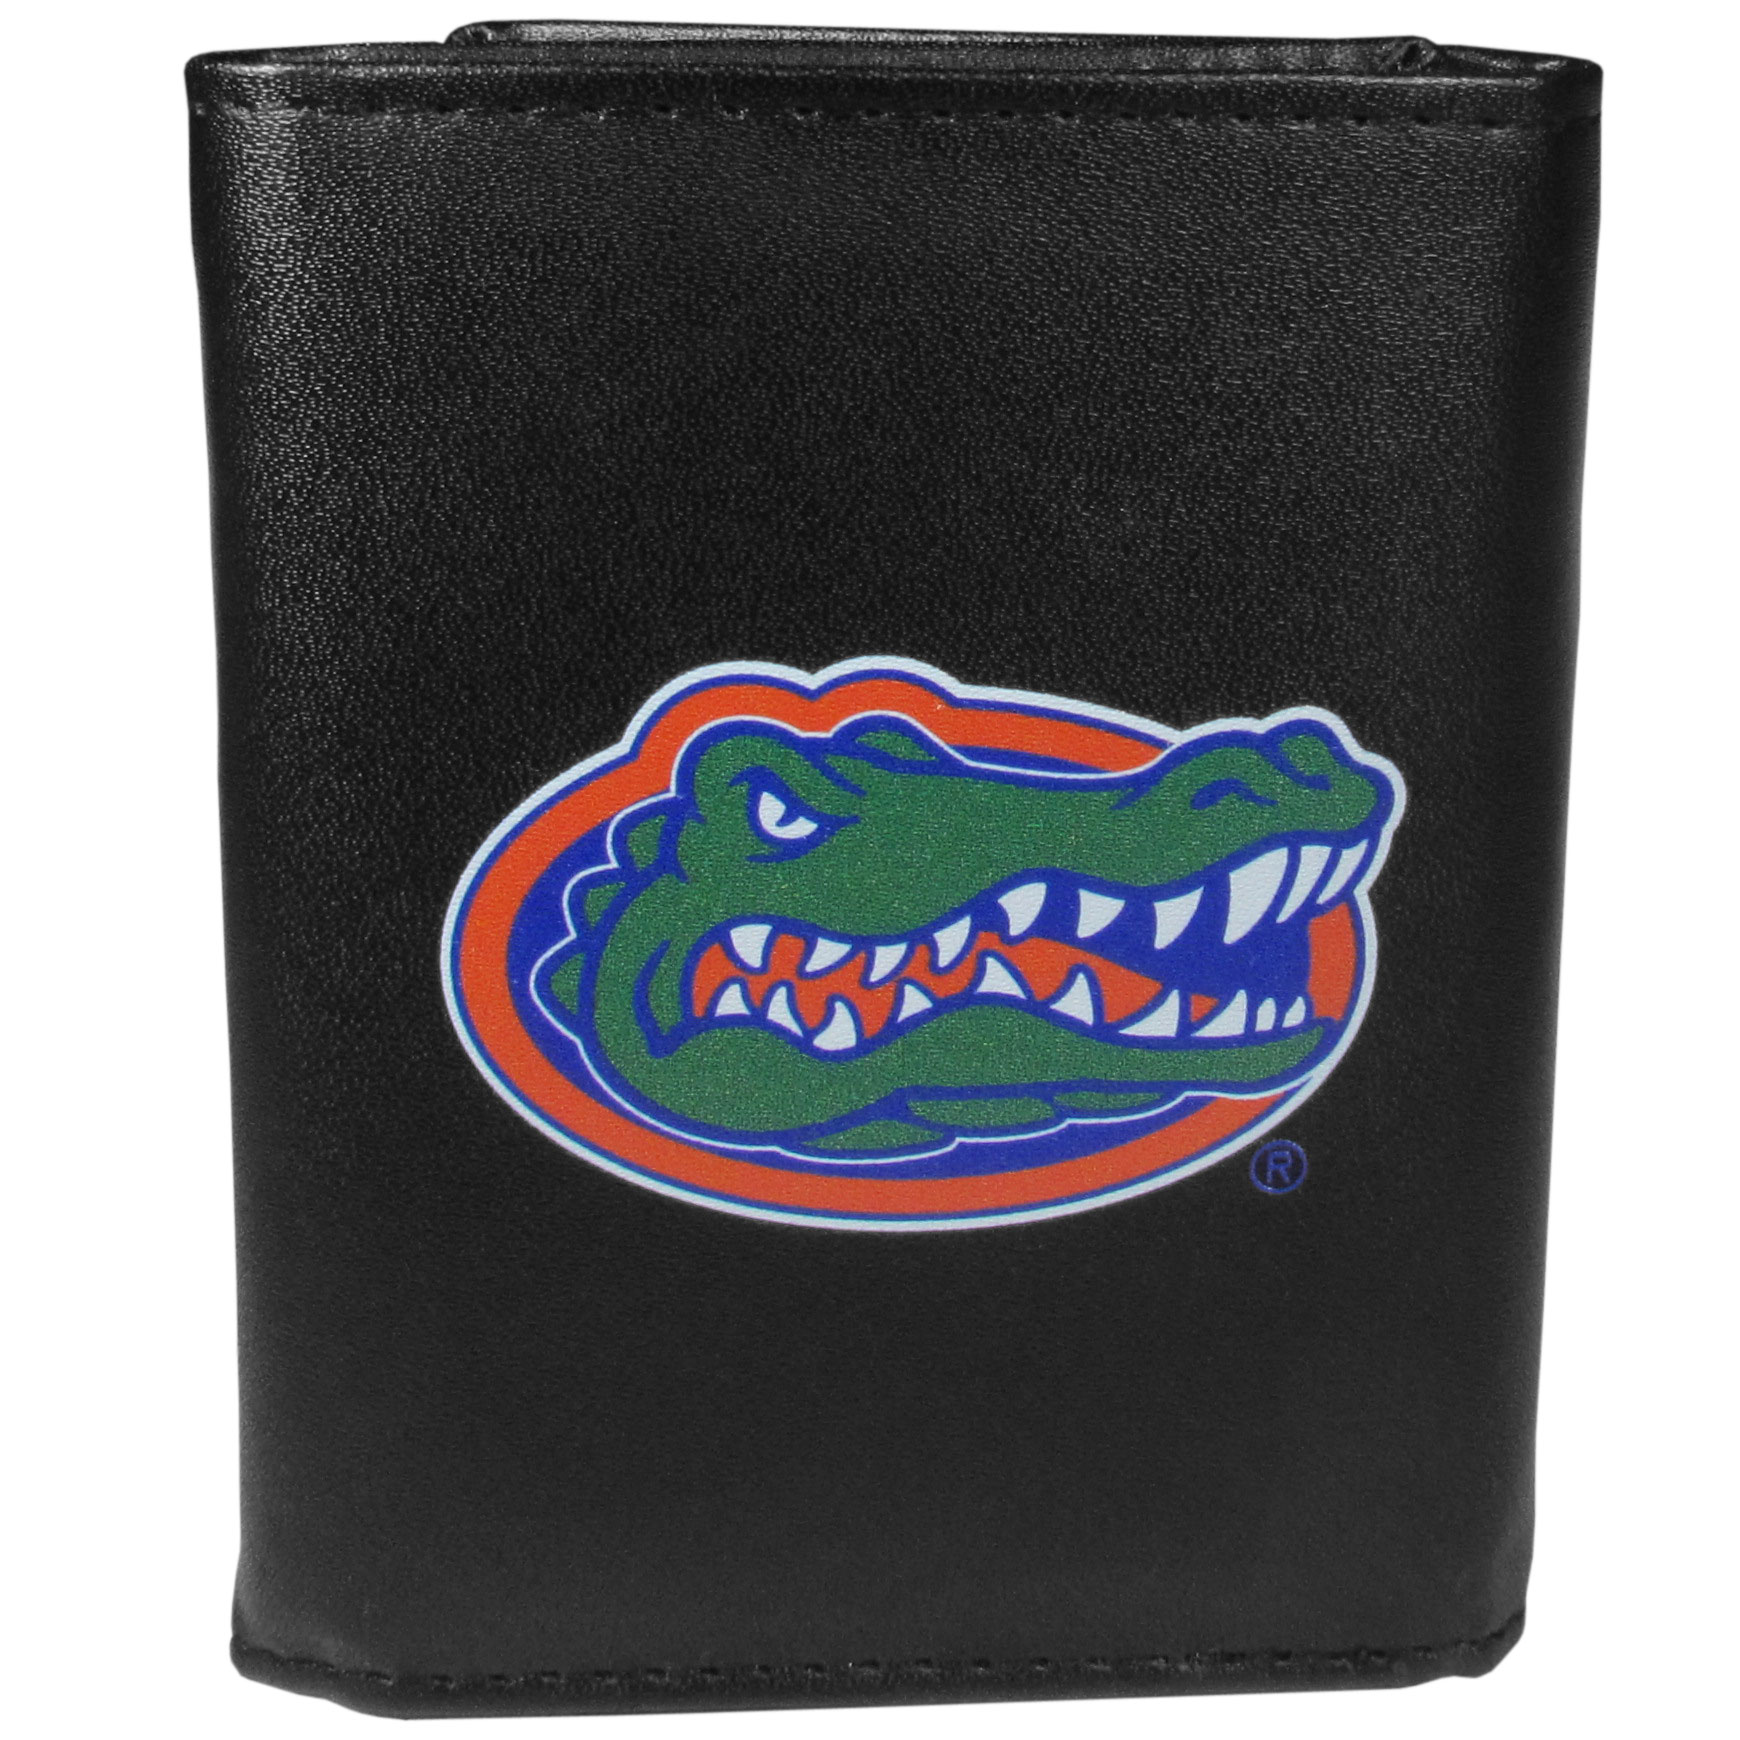 Florida Gators Leather Tri-fold Wallet, Large Logo - Our classic fine leather tri-fold wallet is meticulously crafted with genuine leather that will age beautifully so you will have a quality wallet for years to come. This is fan apparel at its finest. The wallet is packed with organizational  features; lots of credit card slots, large billfold pocket, and a window ID slot. The front of the wallet features an extra large Florida Gators printed logo.